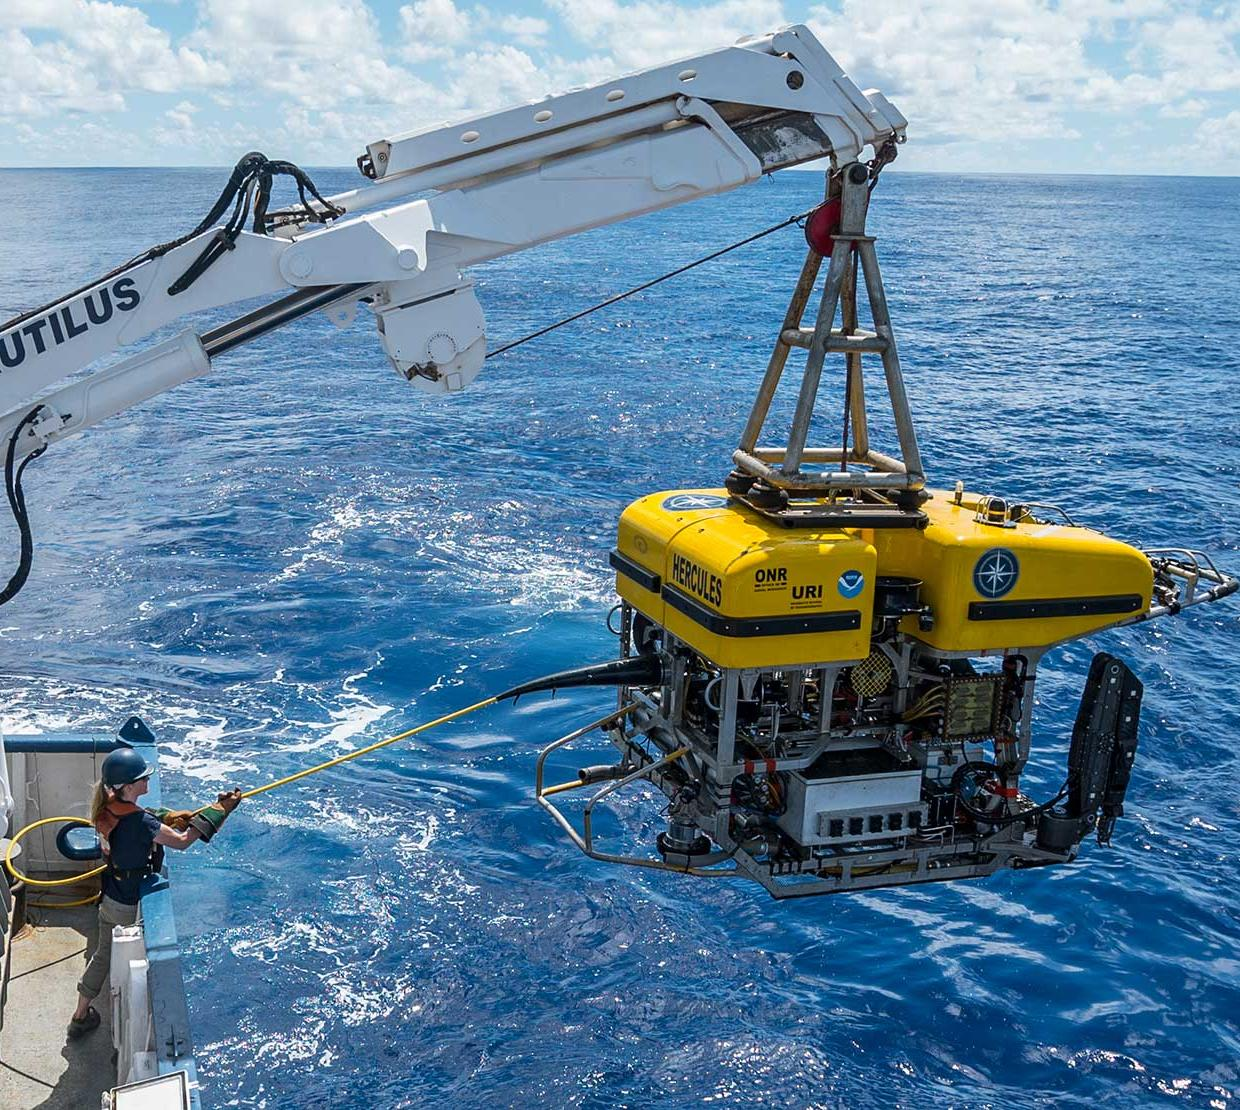 boat crane releasing research submarine into ocean